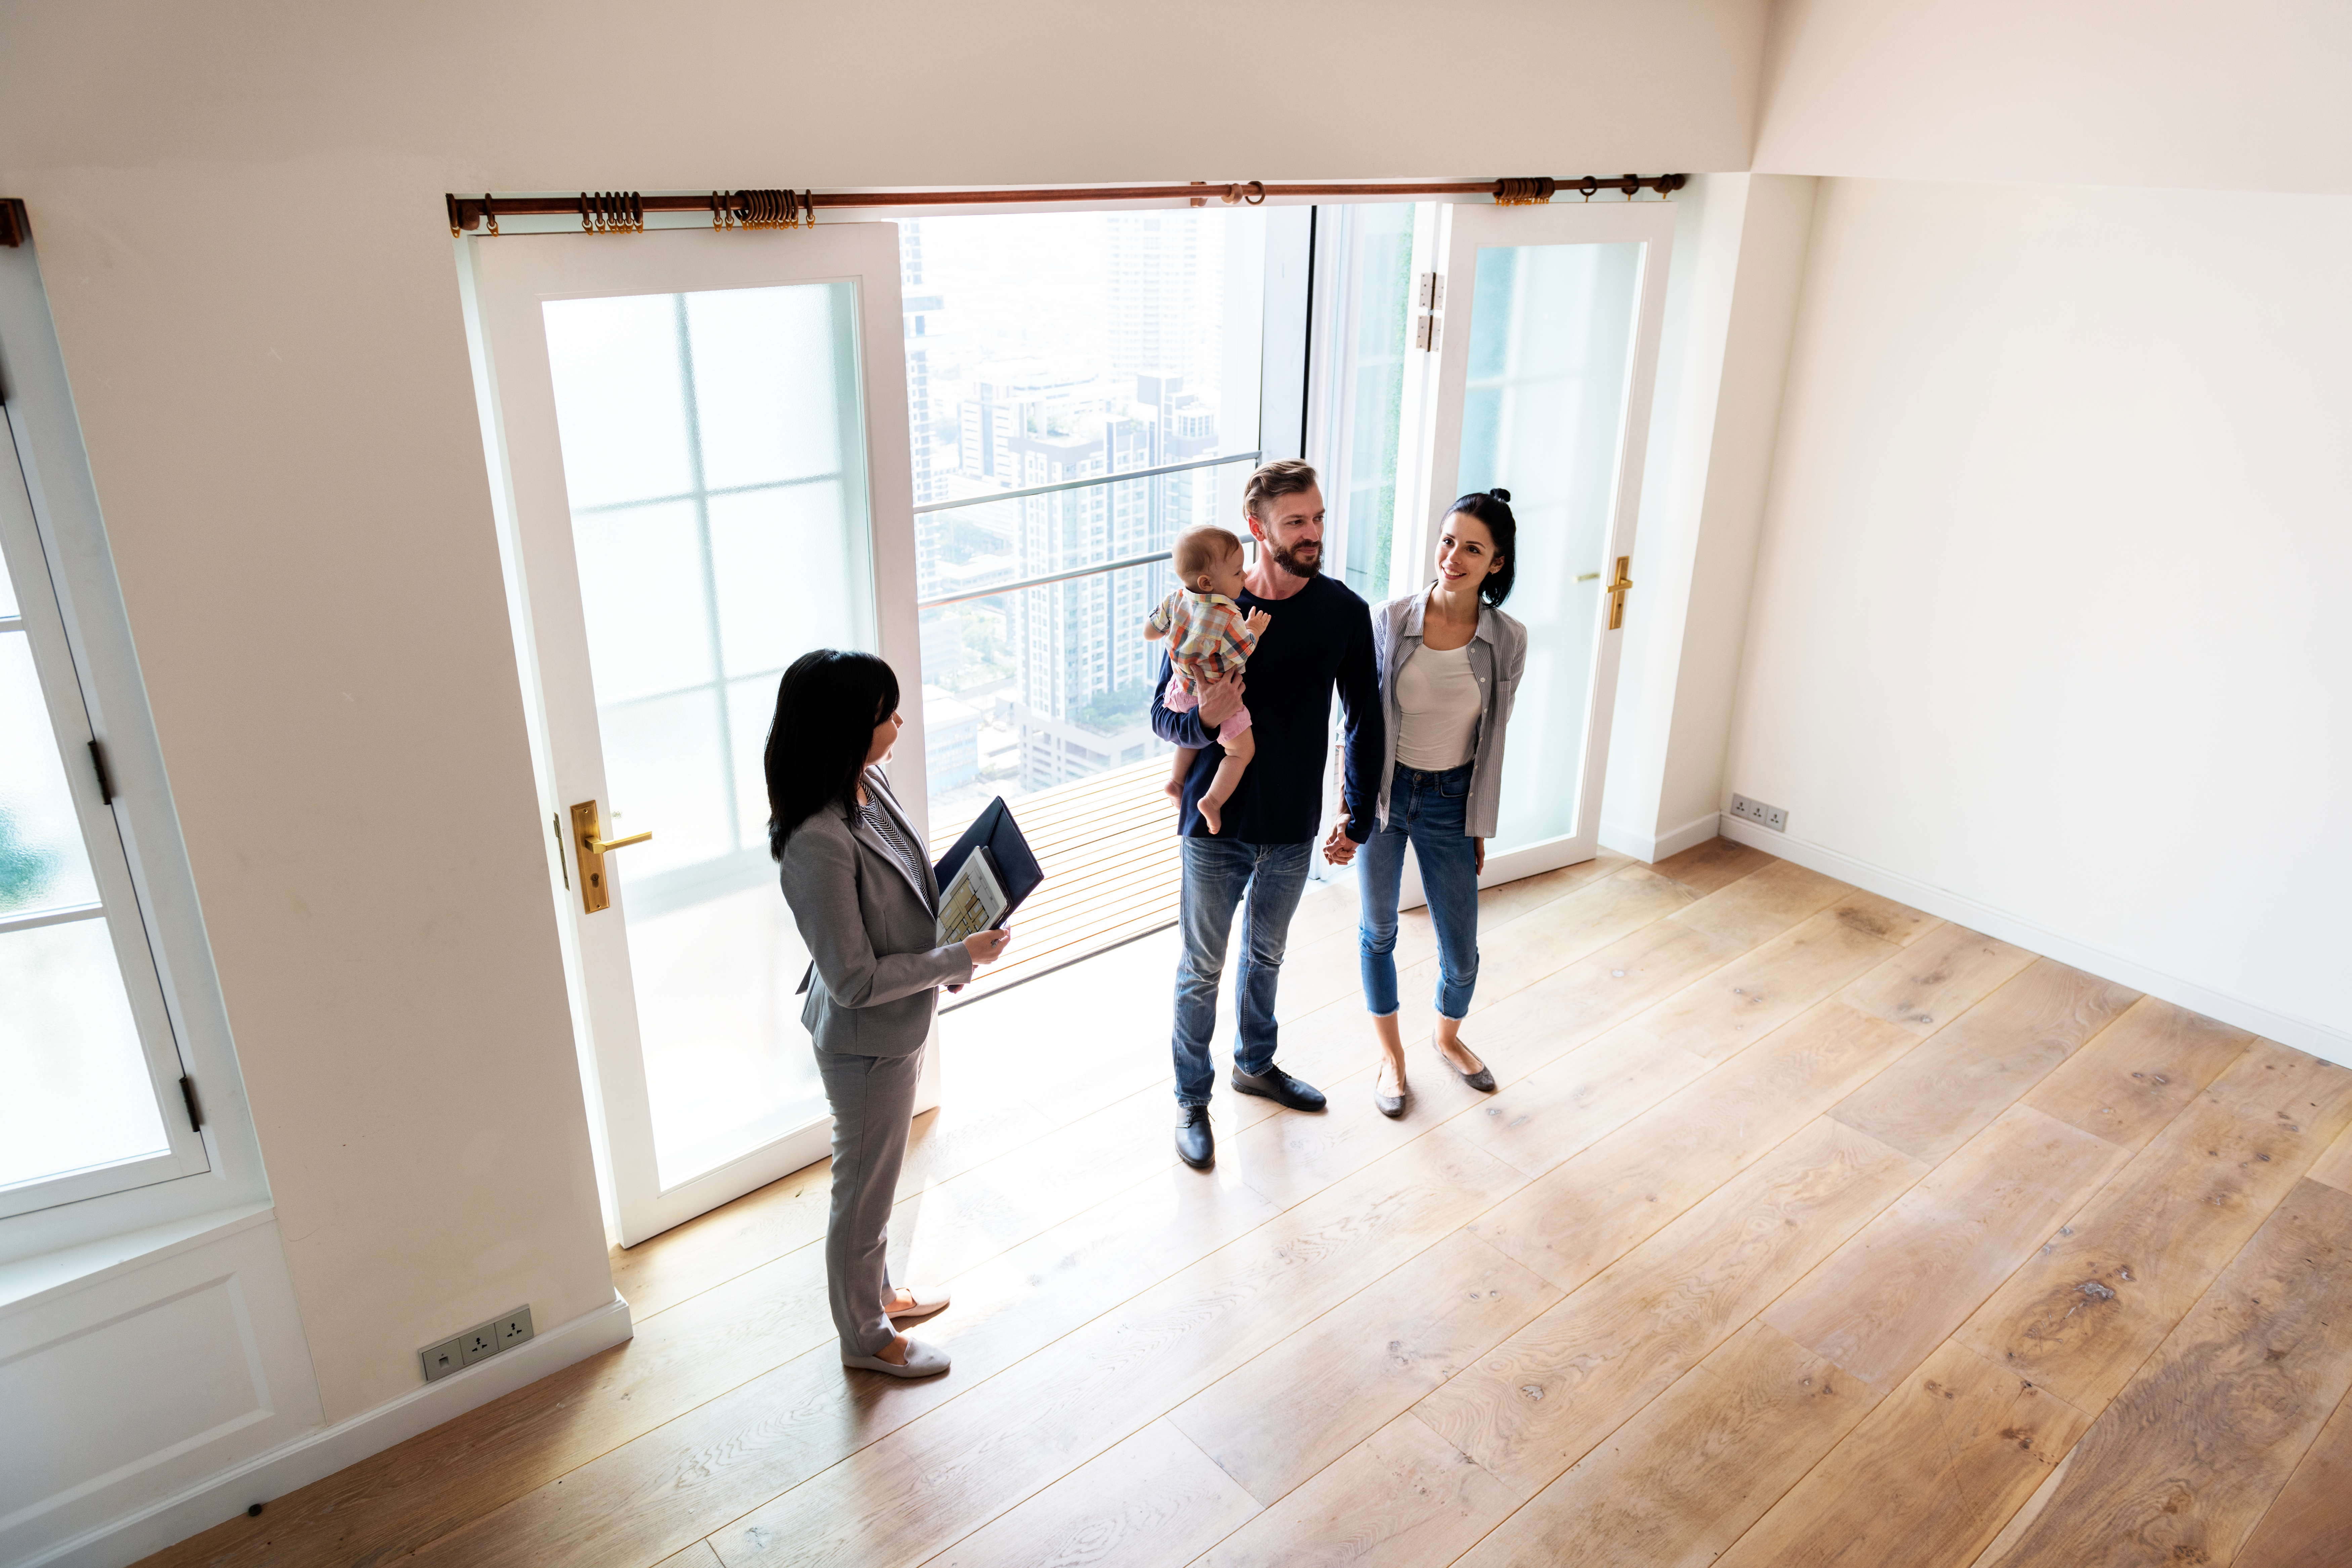 Three Red Flags to Look For When Buying a Home